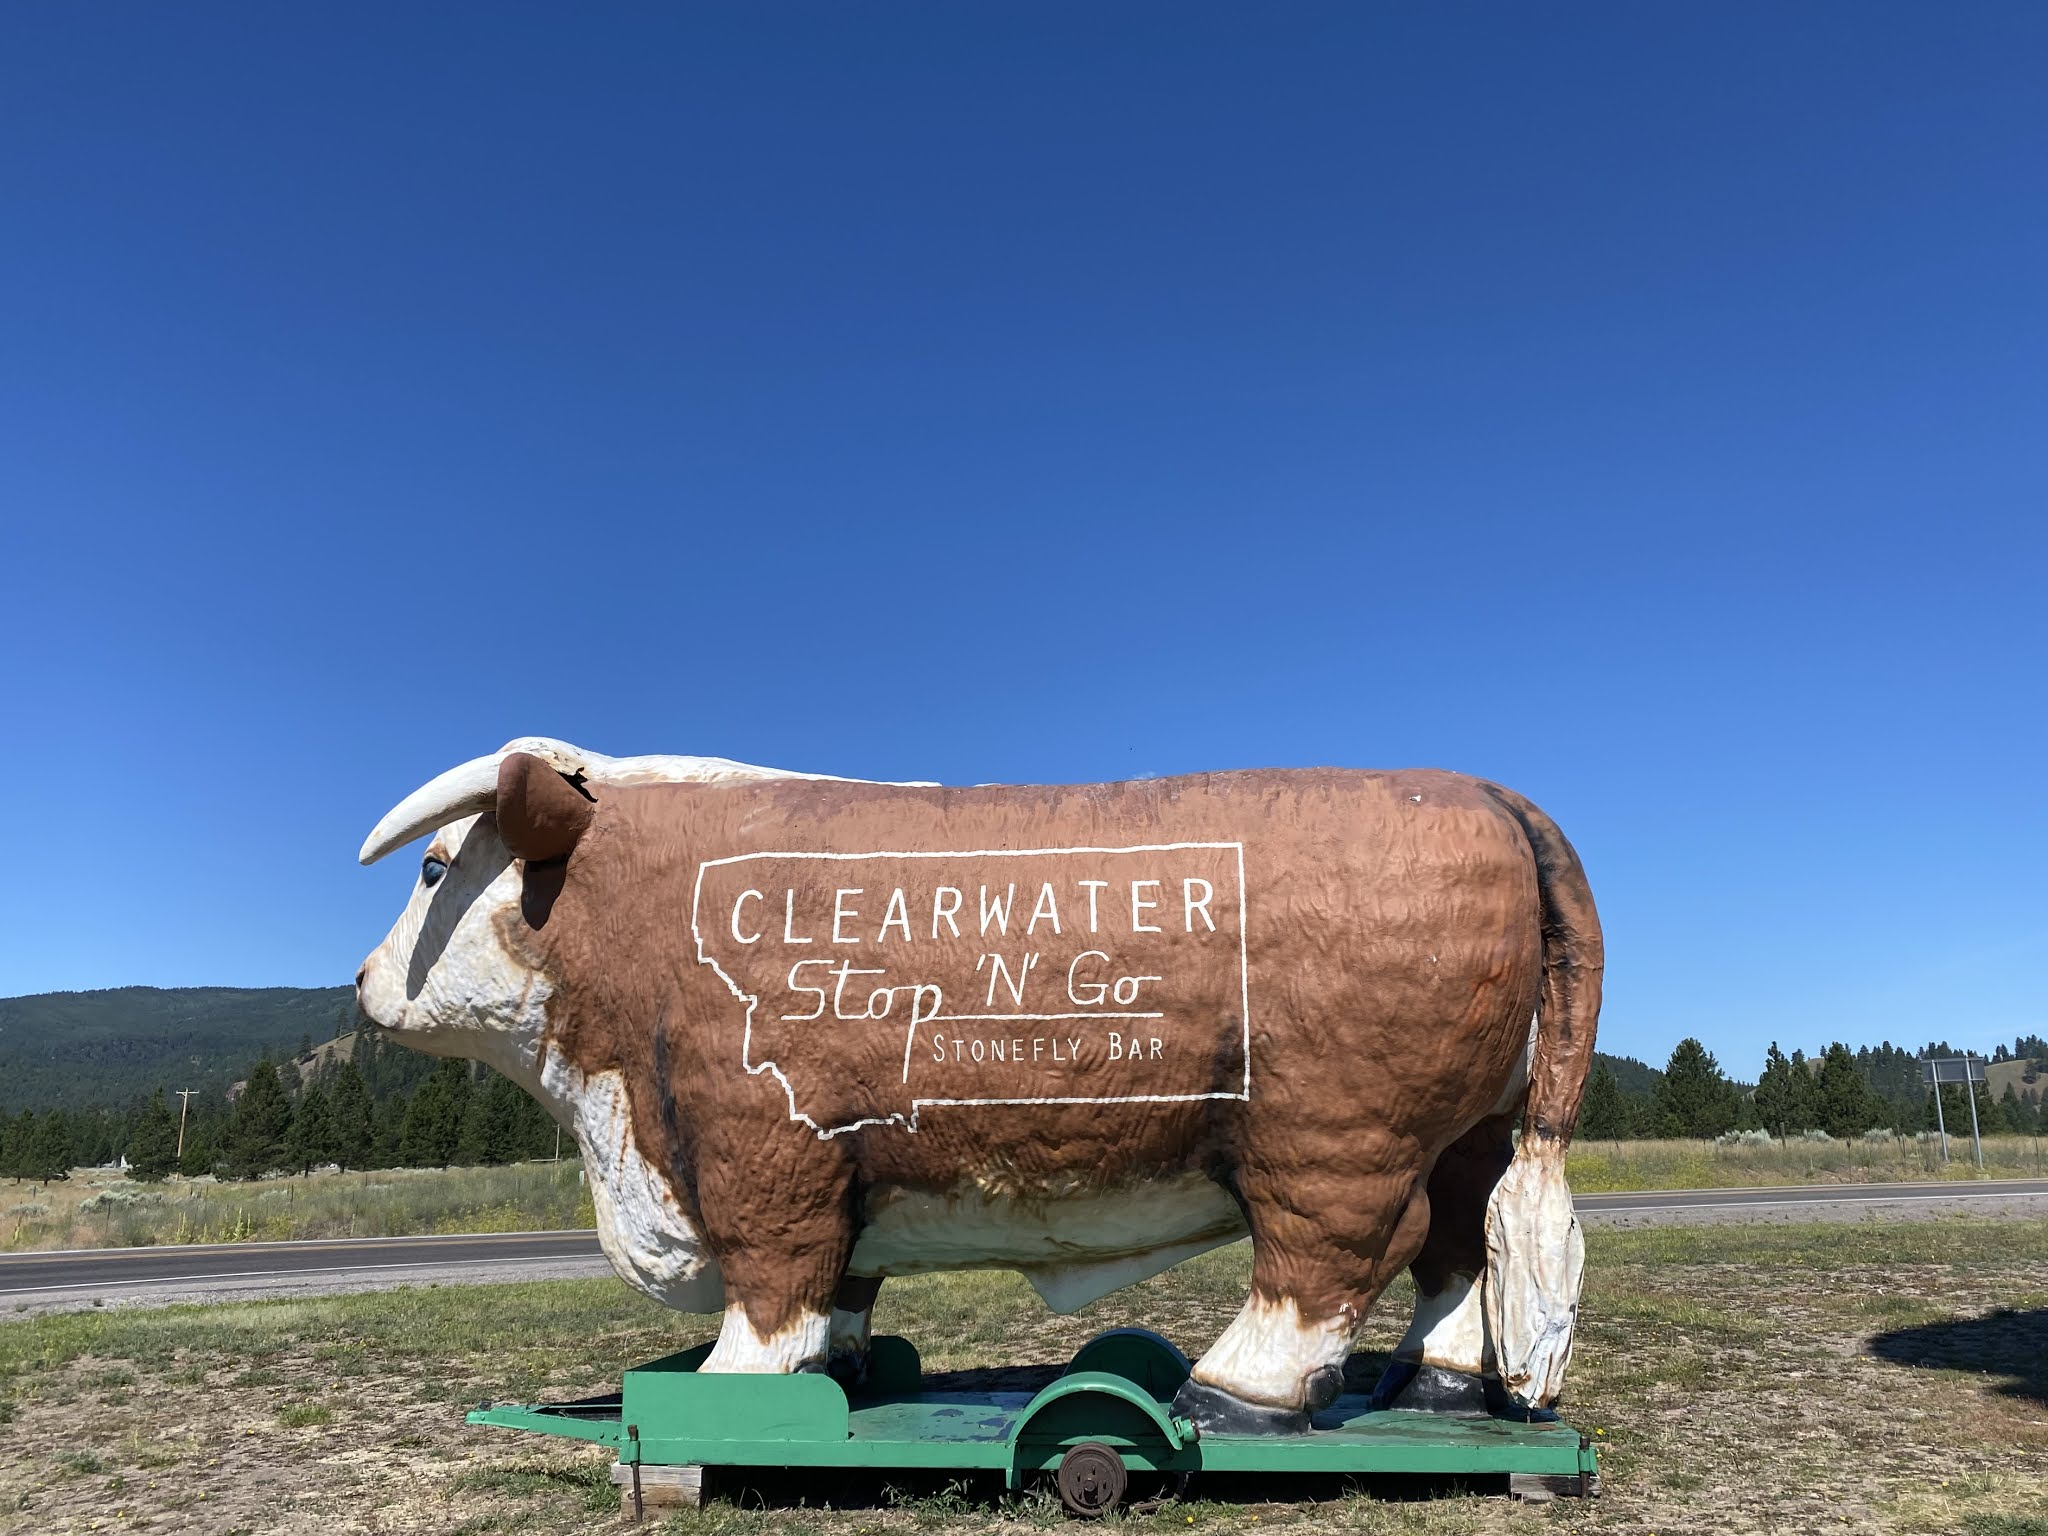 Giant Cow in Clearwater, Montana | biblio-style.com